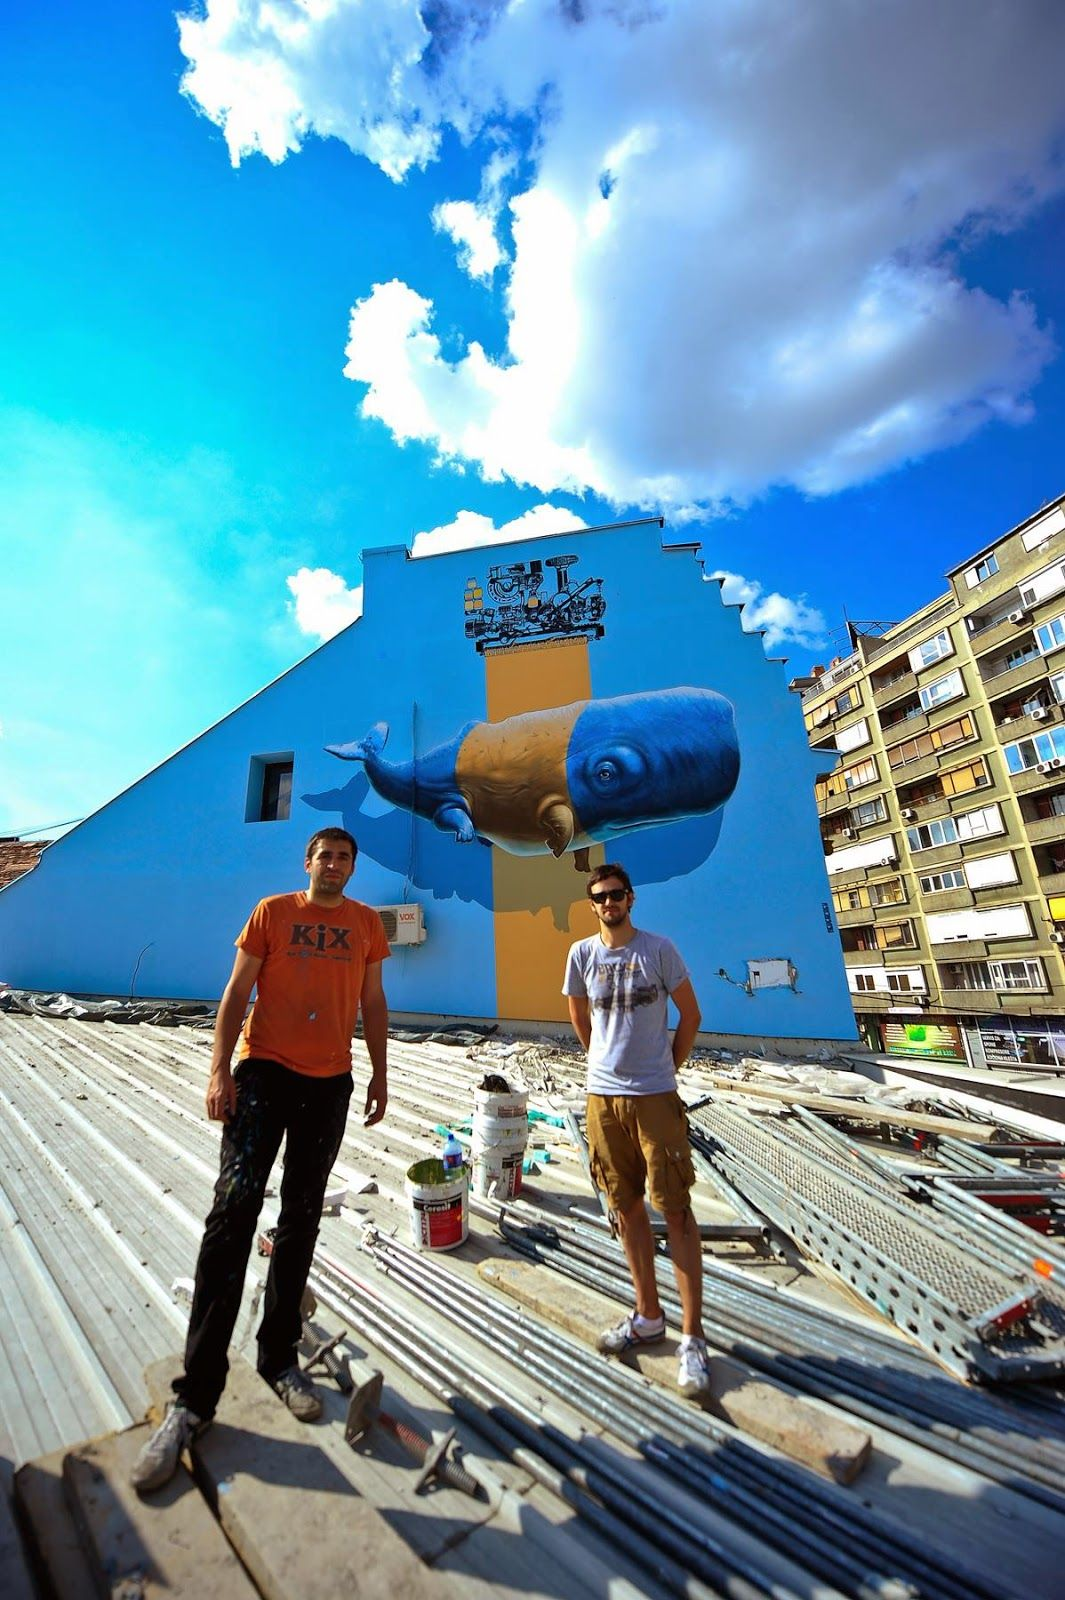 The good lads from Never Crew aka Christian Rebecchi and Pablo Togni reently stopped by Belgrade, Serbia for the Mikser Beograd Street Art Festival. Hailing from Switzerland, the duo painted this fun new piece showing a massive blue whale being painted over by some intriguing machinery.